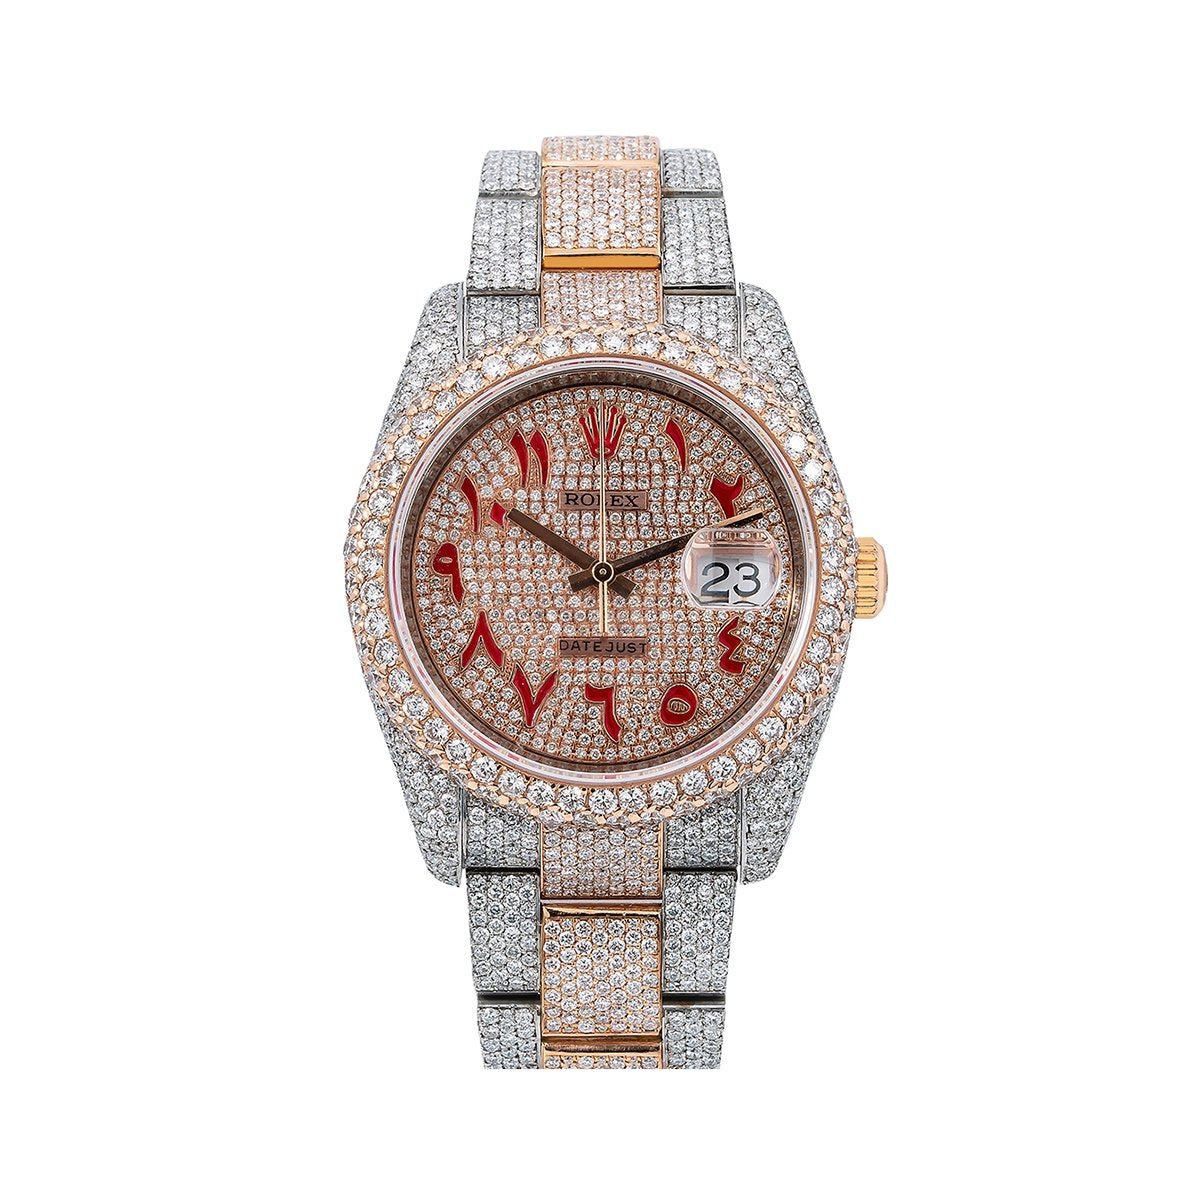 Rolex Datejust Diamond Watch, 116201 36mm, Champagne Diamond Dial With 21.75 CT Diamonds